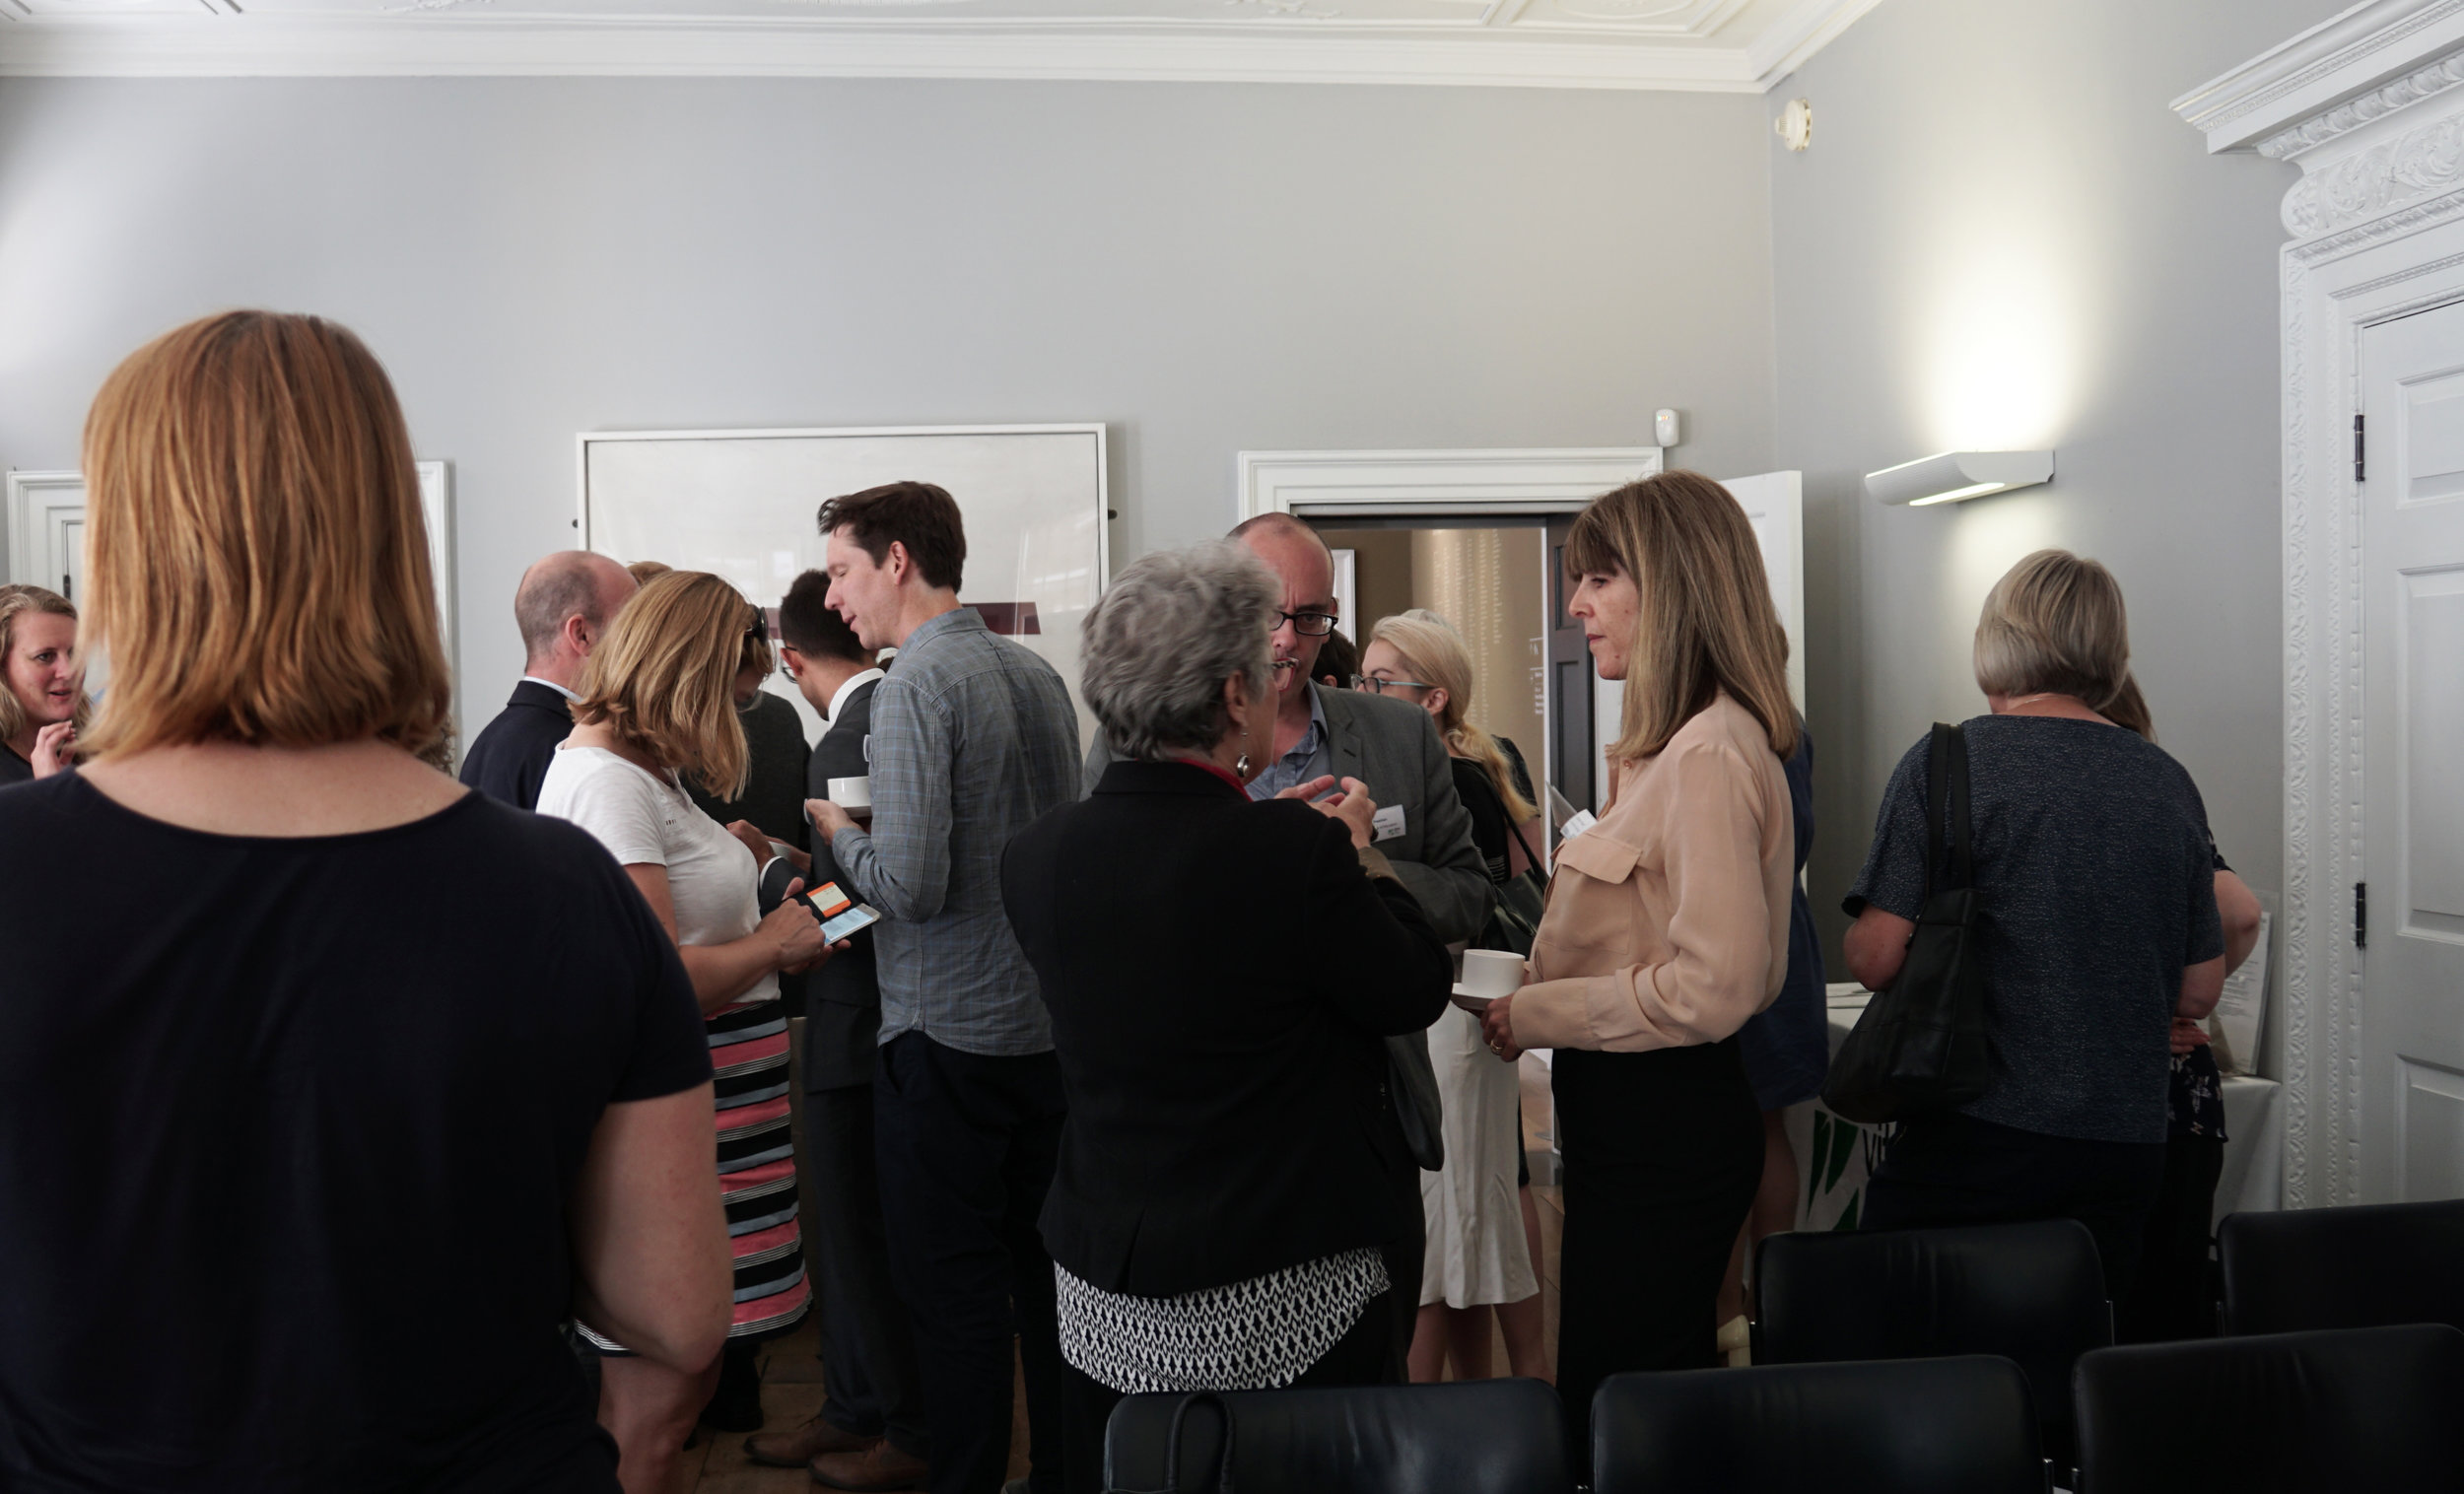 Guests enjoy a drinks reception at the 'One size does not fit all' launch